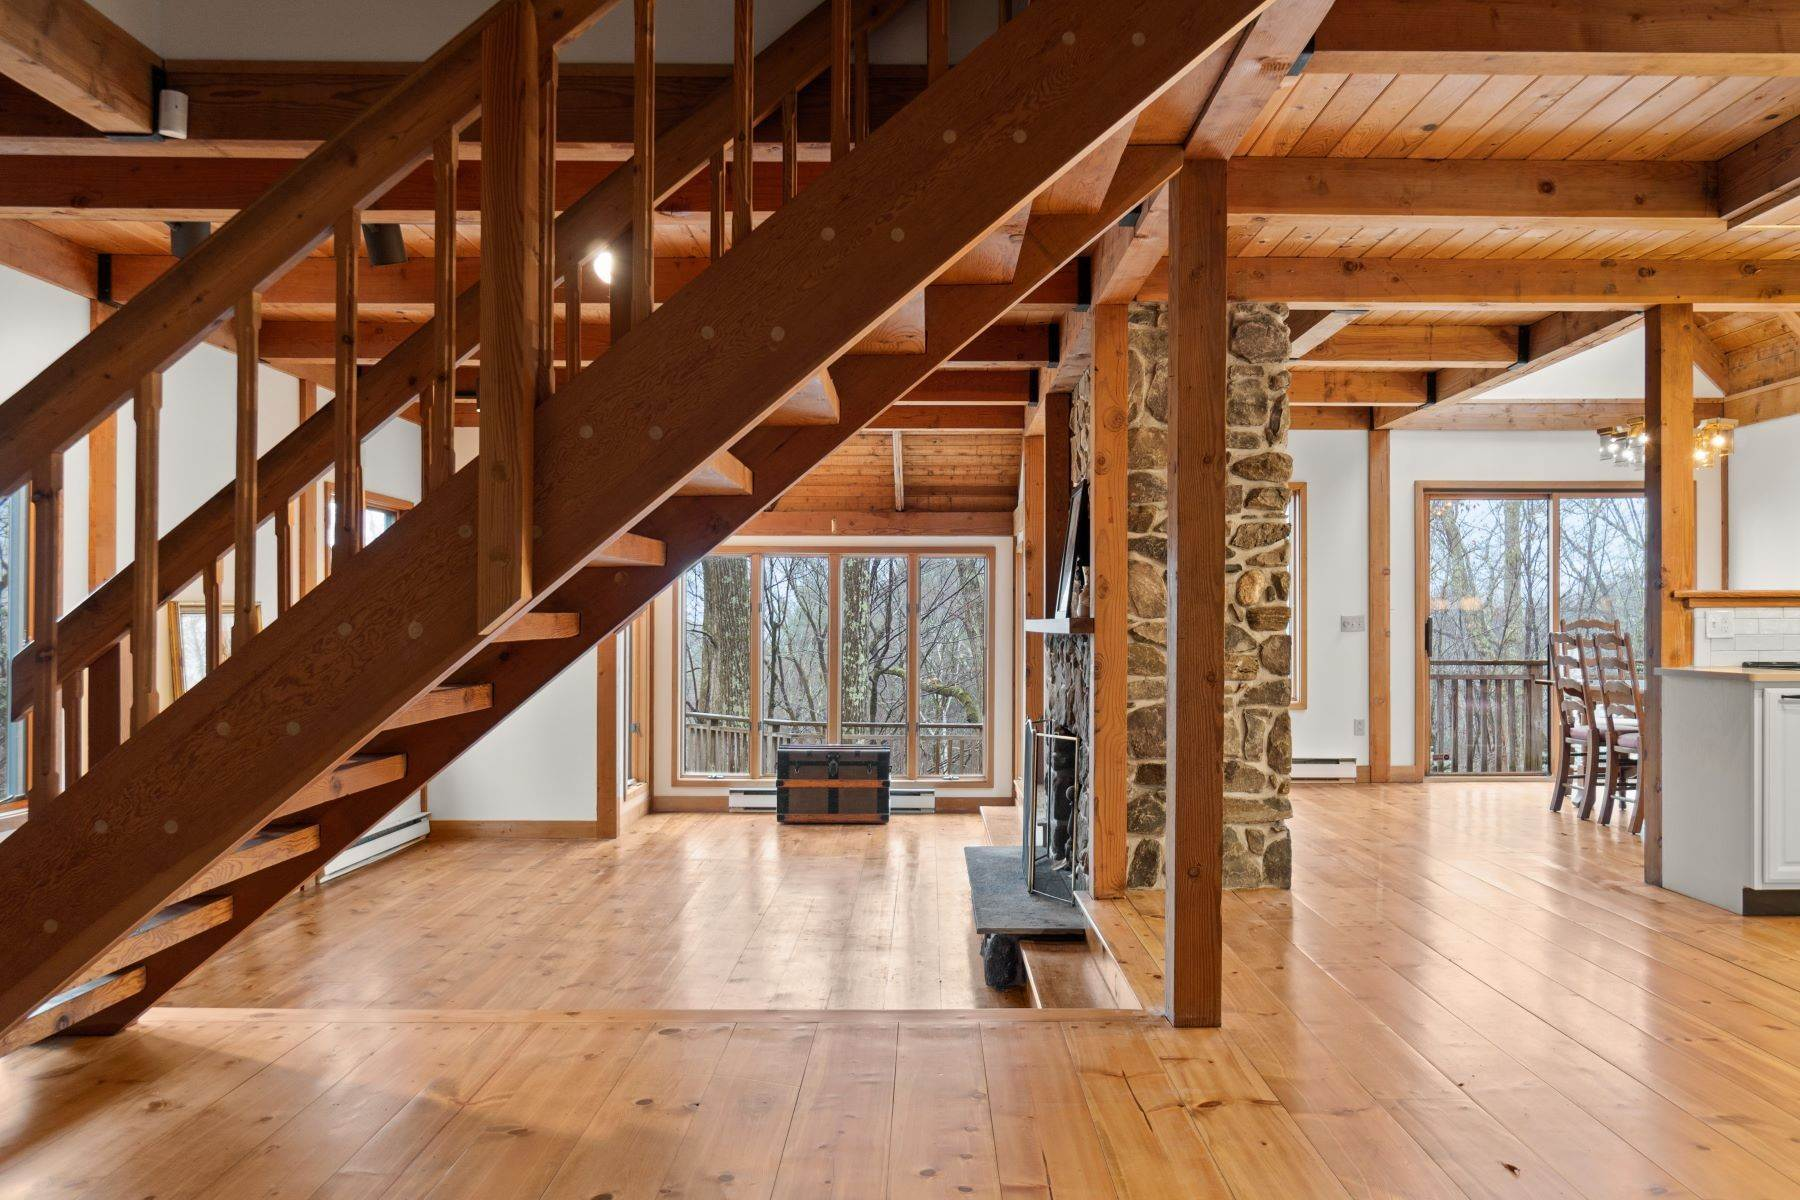 27. Single Family Homes for Sale at Secluded Mountain Top Post & Beam 35 Stone Ledge Rd Hillsdale, New York 12529 United States